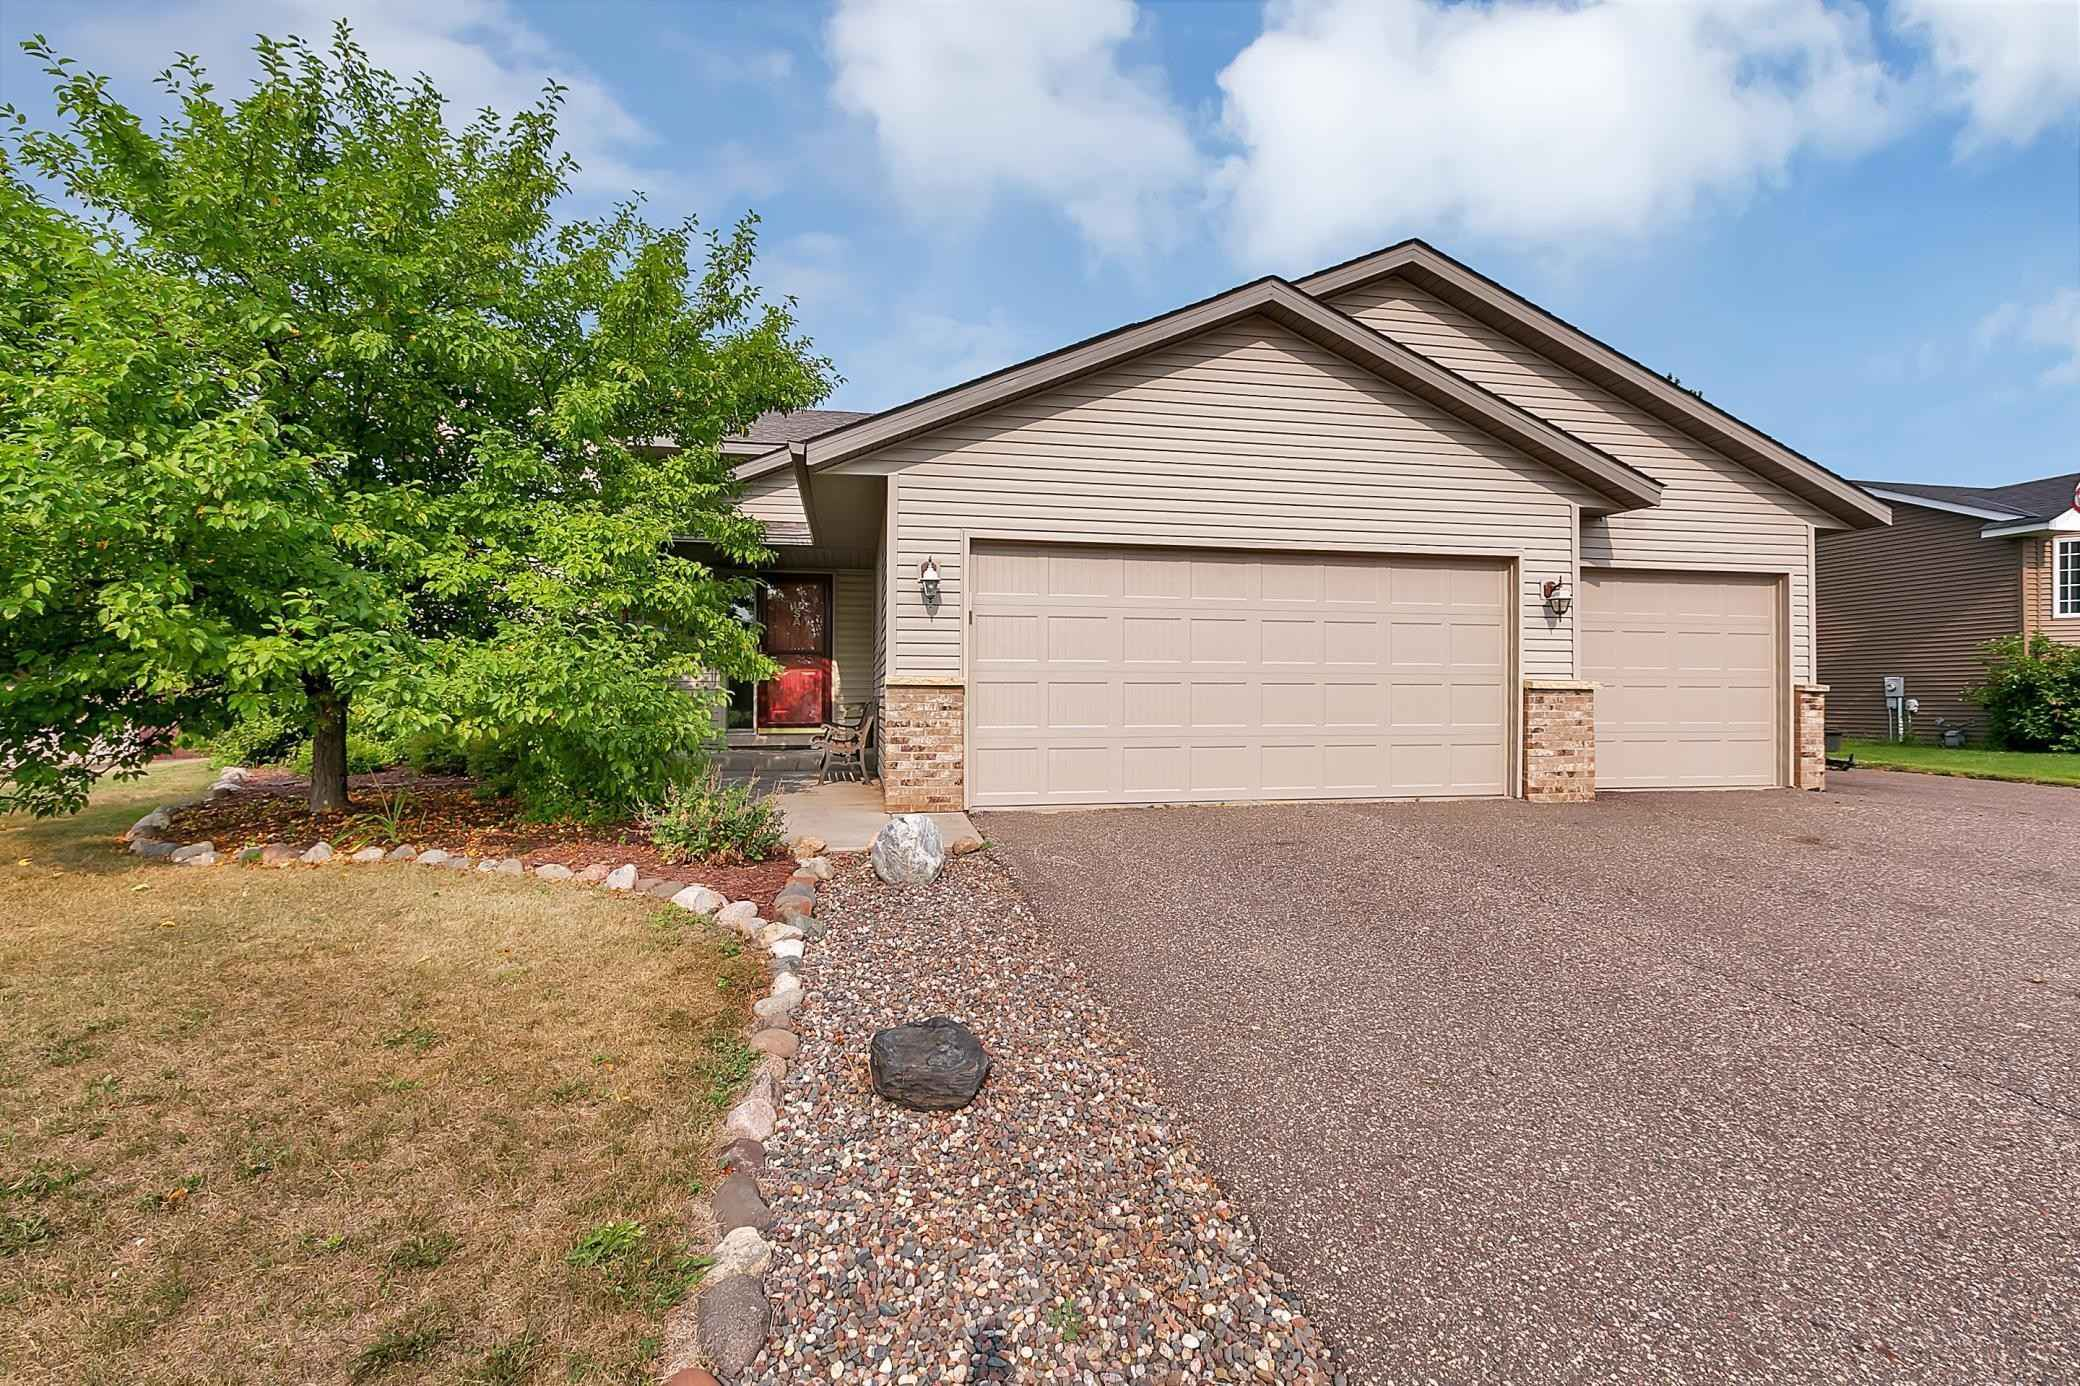 View 27 photos of this 4 bed, 2 bath, and 2,002 sqft. single_family home located at 653 Brooke Ave, Foley, Minnesota 56329 is Pending for $229,900.